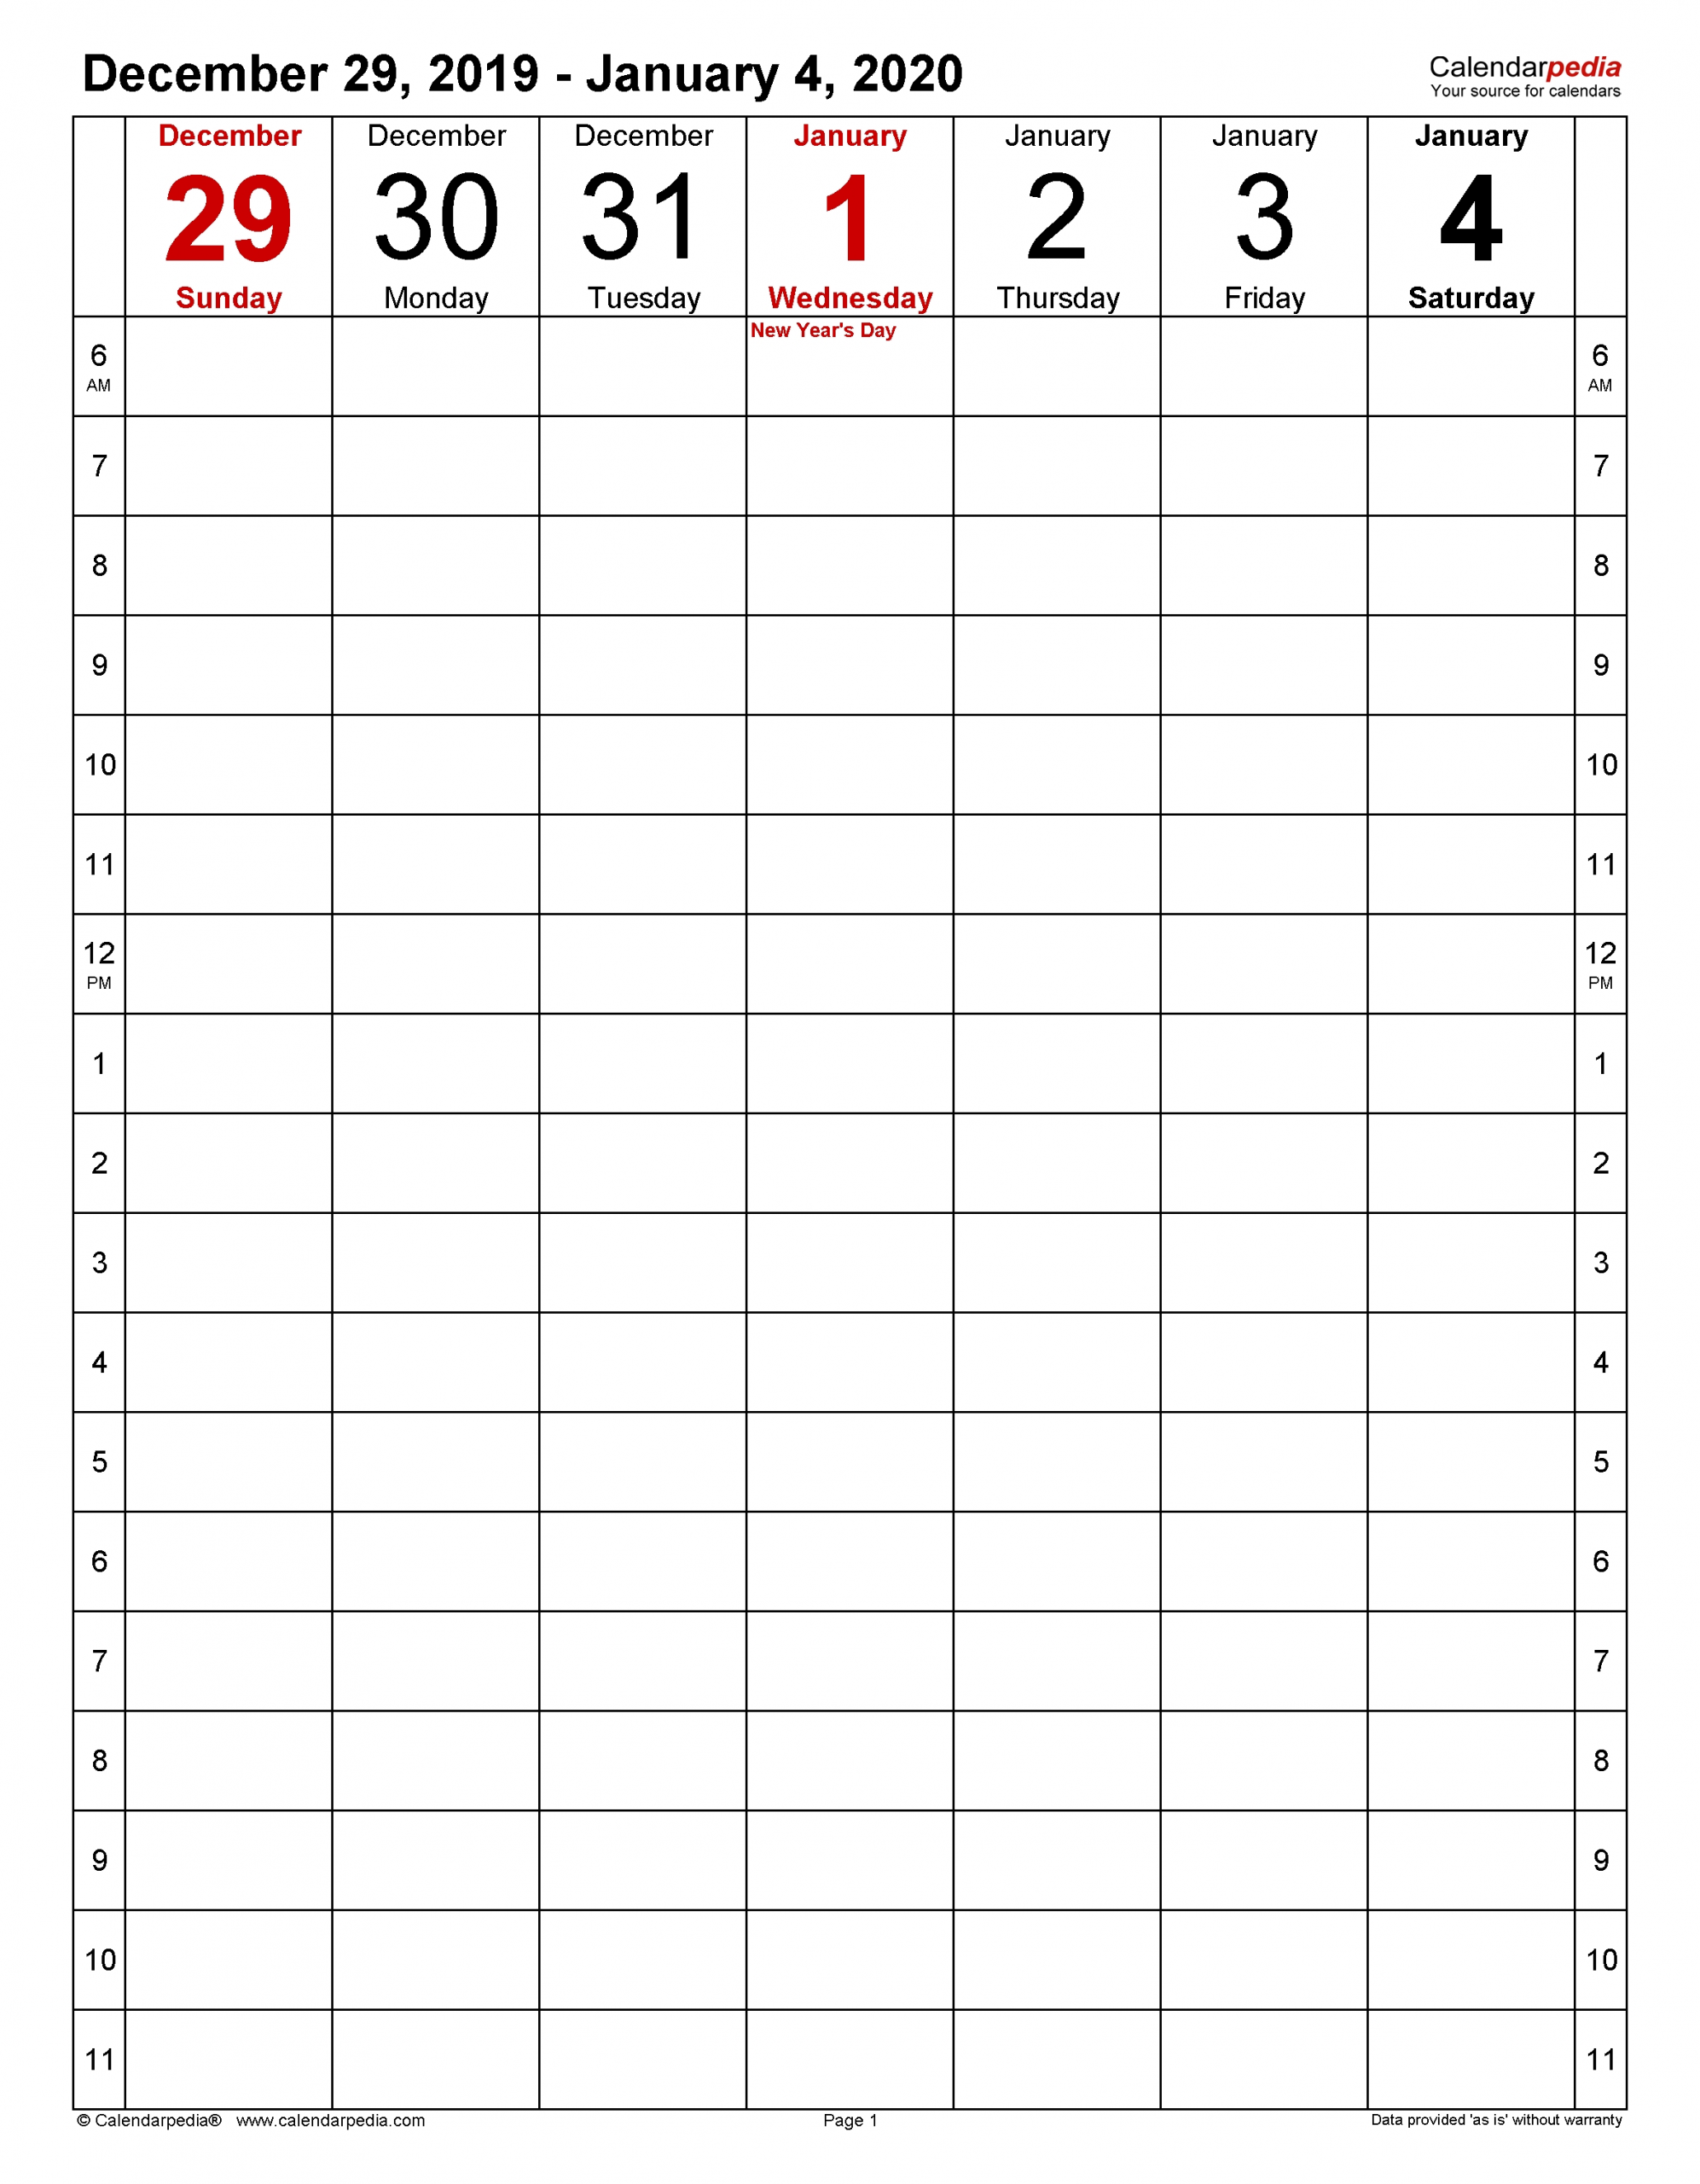 Weekly Calendars 2020 For Pdf - 12 Free Printable Templates pertaining to 5 Days Event Calendar Template